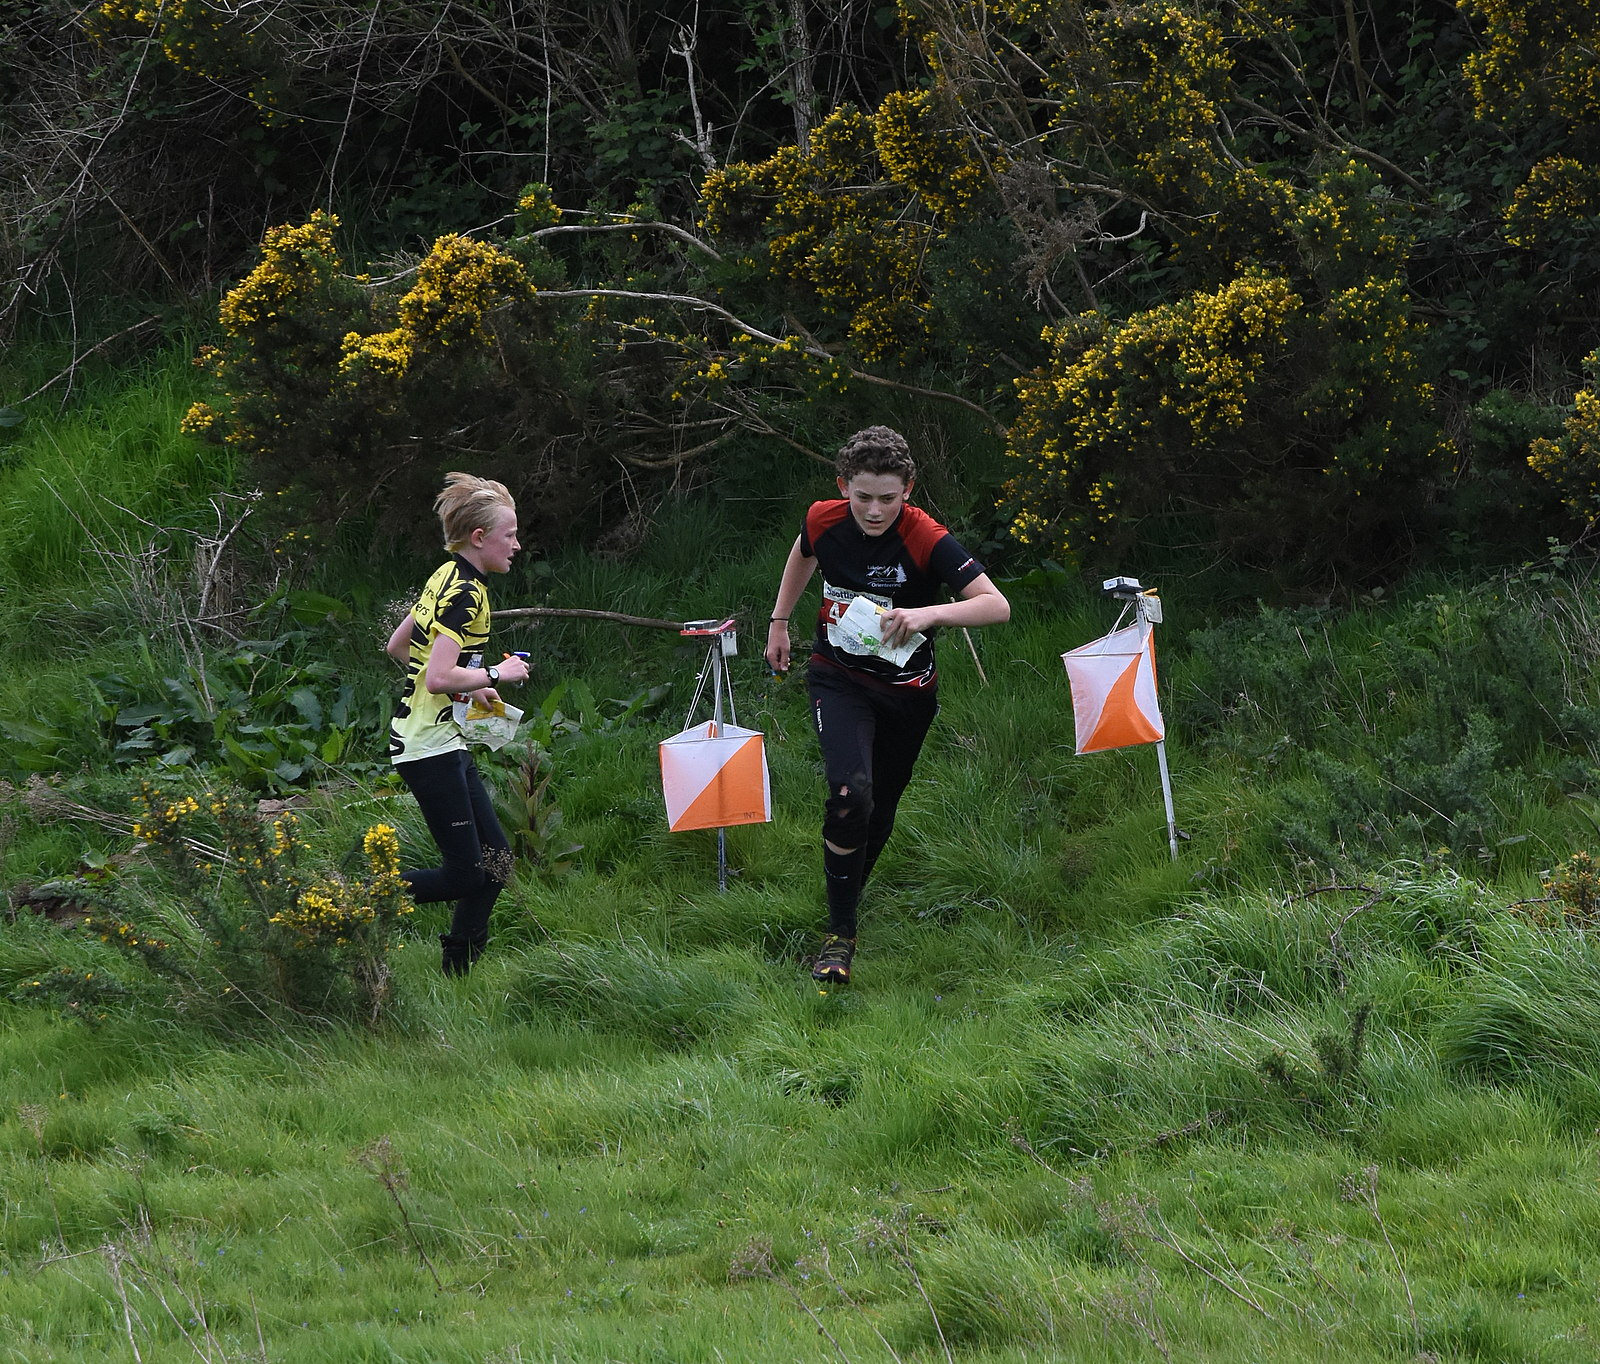 2 young orienteers enjoying group activity Scotland